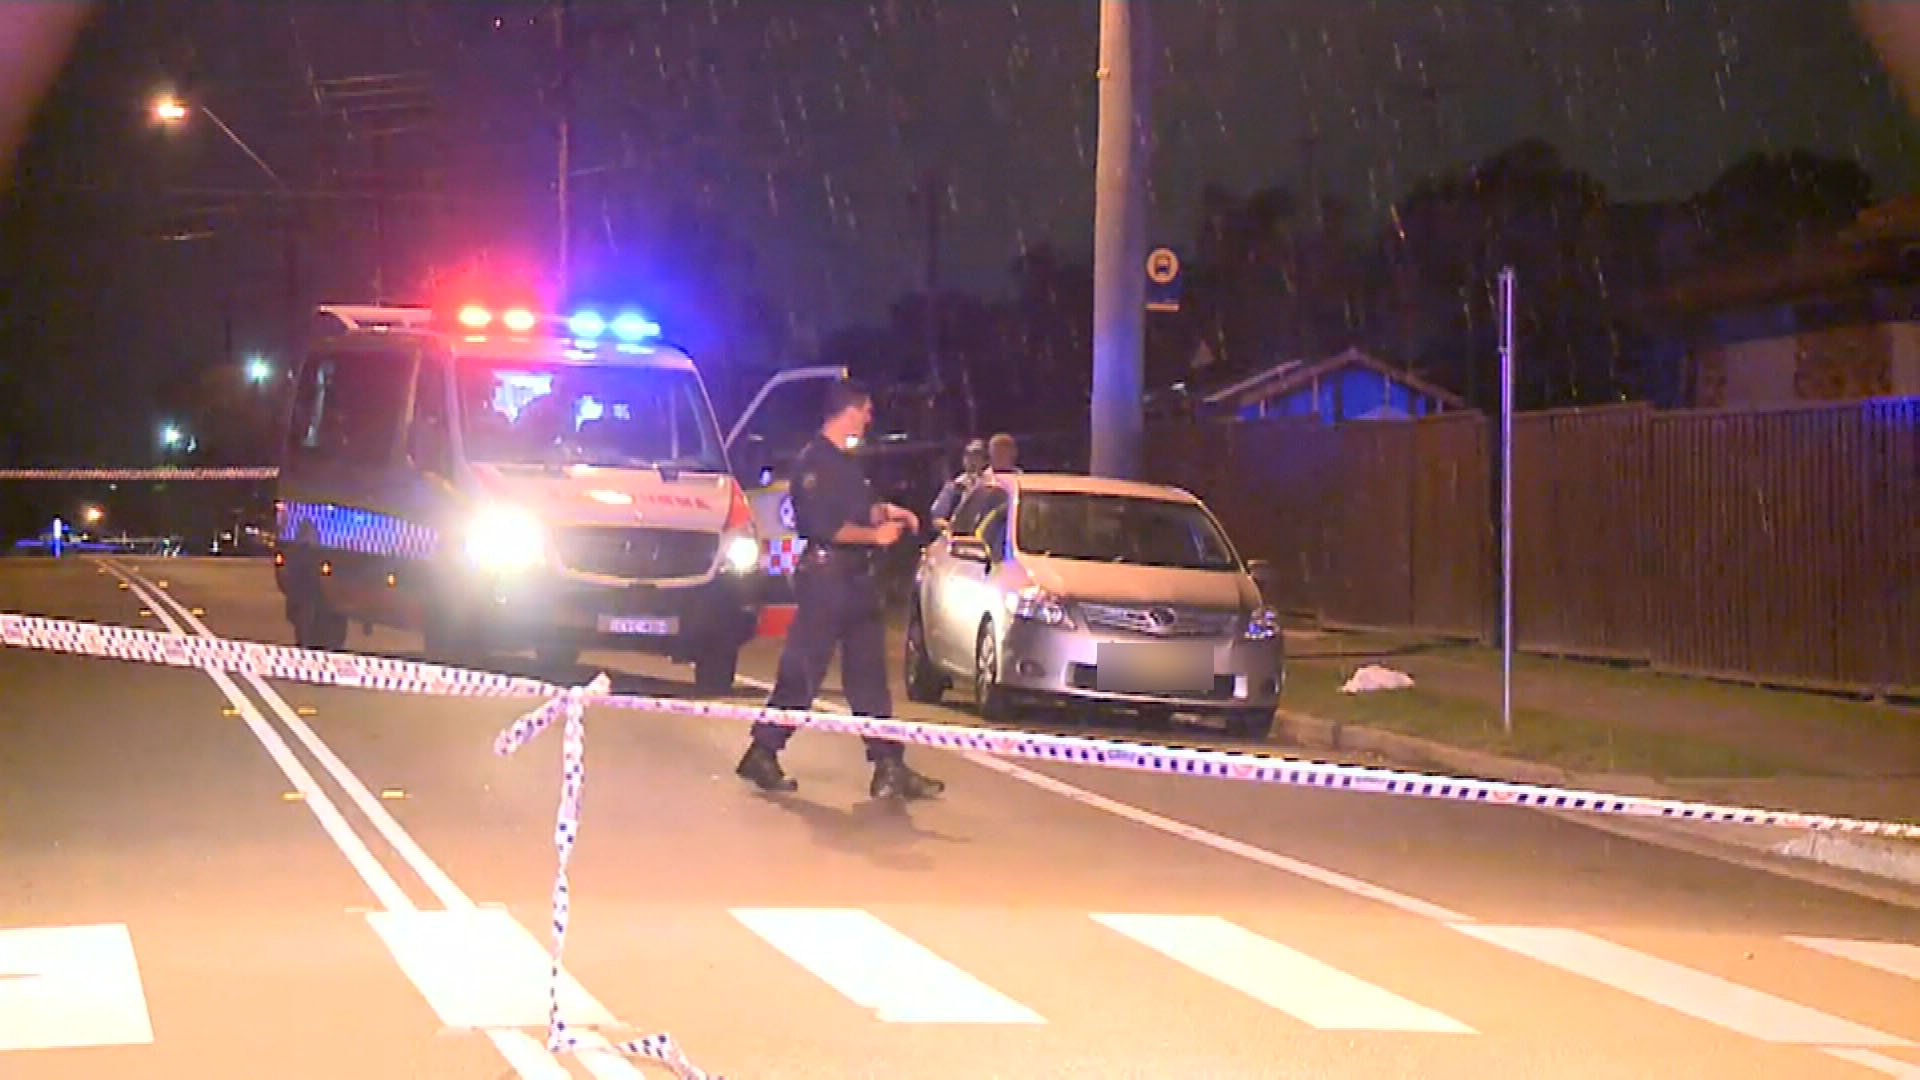 Police said an unknown vehicle was seen leaving the scene shortly after shots were heard. (9NEWS)